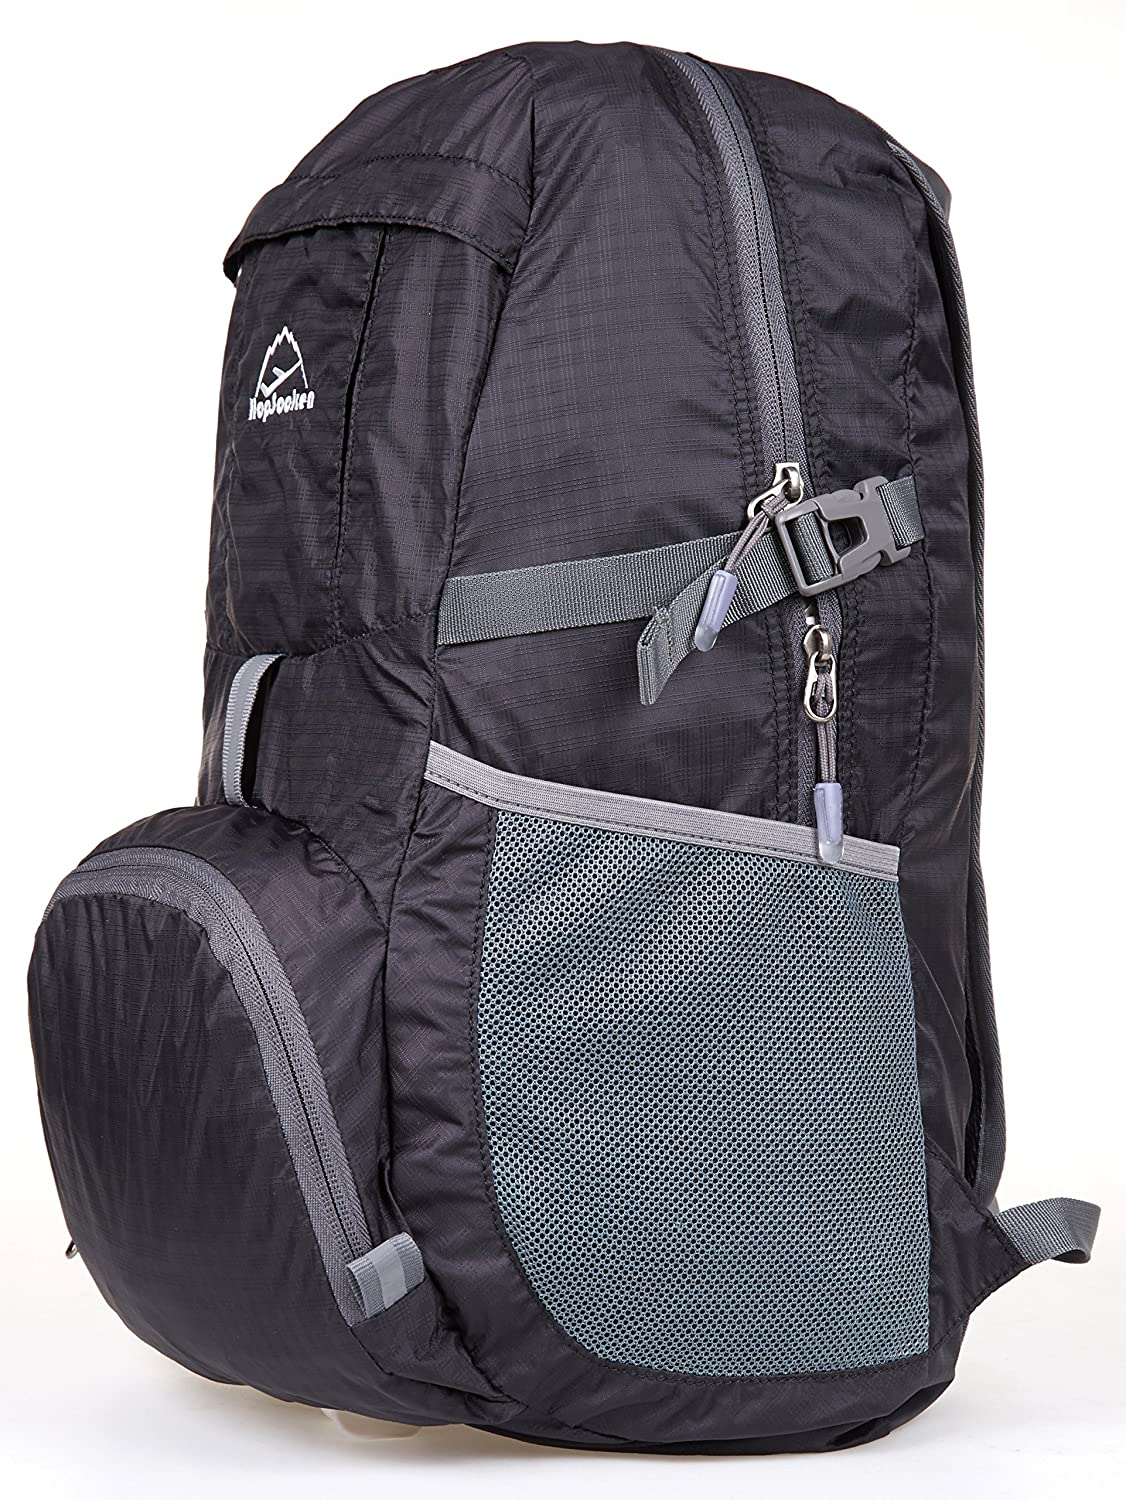 Best Lightweight Backpacks Reviews Top Lightweight Backpacks